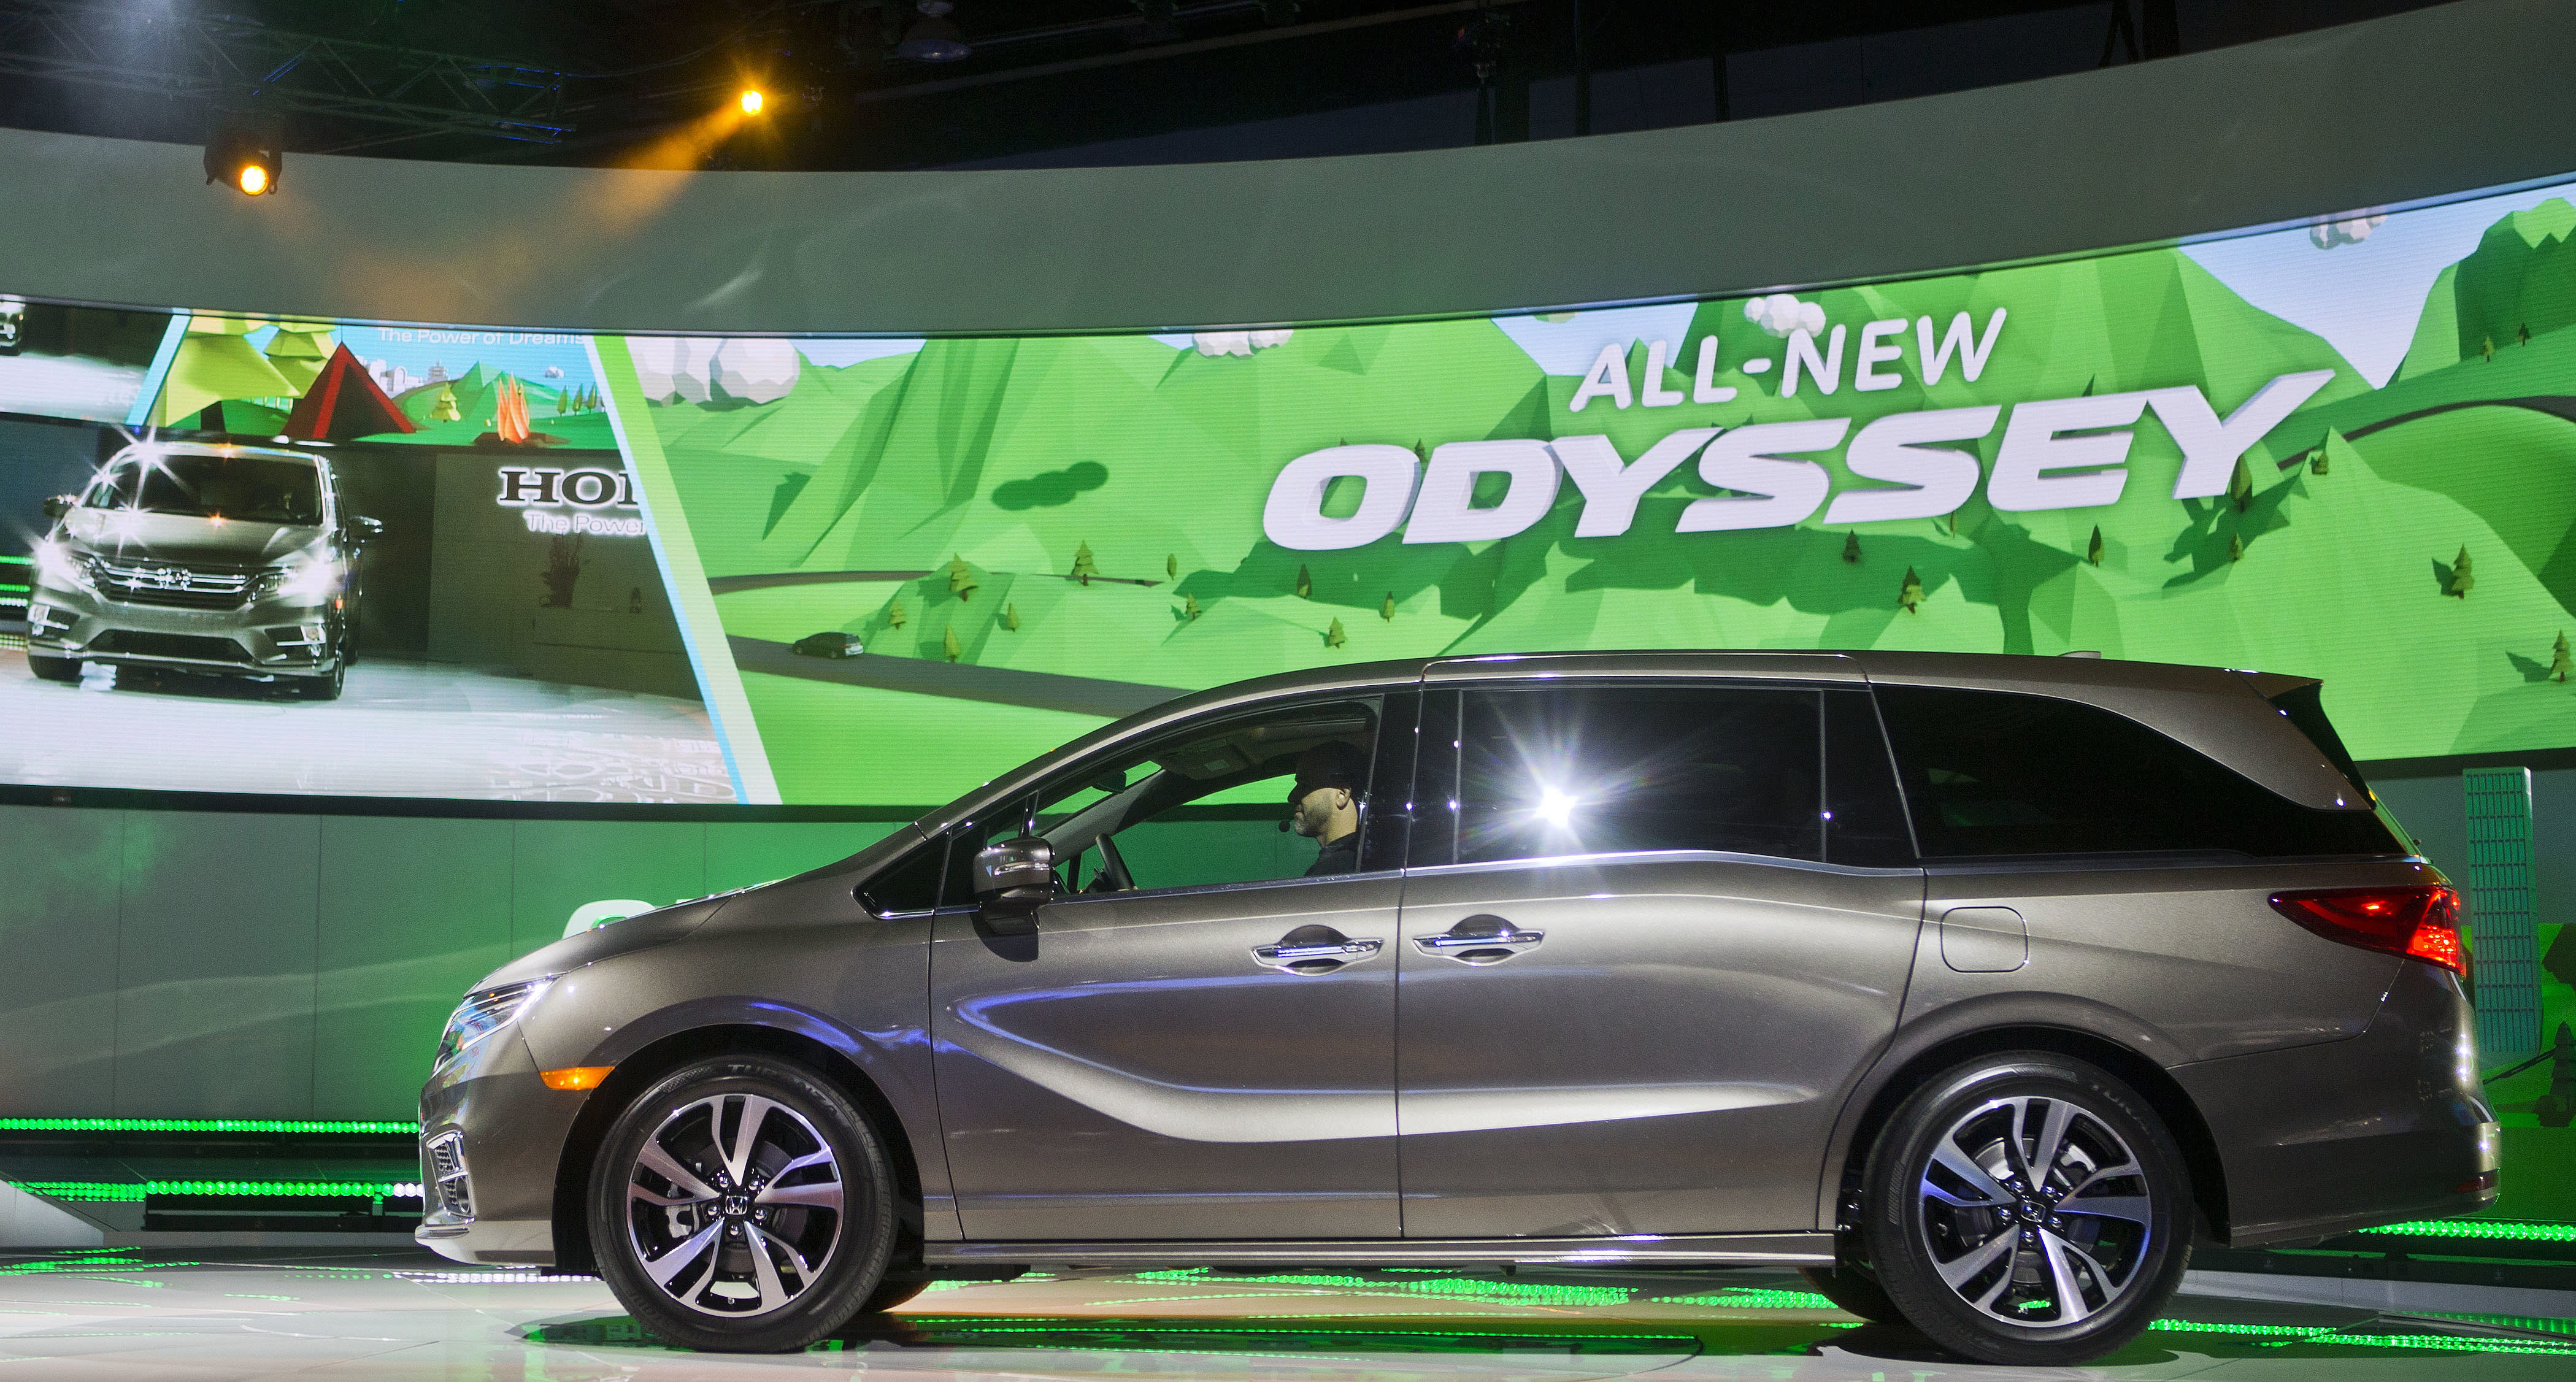 FILE - In this Jan. 9, 2017, file photo, a new Honda Odyssey minivan is unveiled at the North American International Auto Show, in Detroit. Honda recorded a 6.7% decline in July-September profit as vehicle and motorcycle sales slipped and an unfavorable exchange rate hurt earnings at the Japanese automaker, Honda Motor Co. reported Friday, Nov. 8, 2019. (AP Photo/Tony Ding, File)